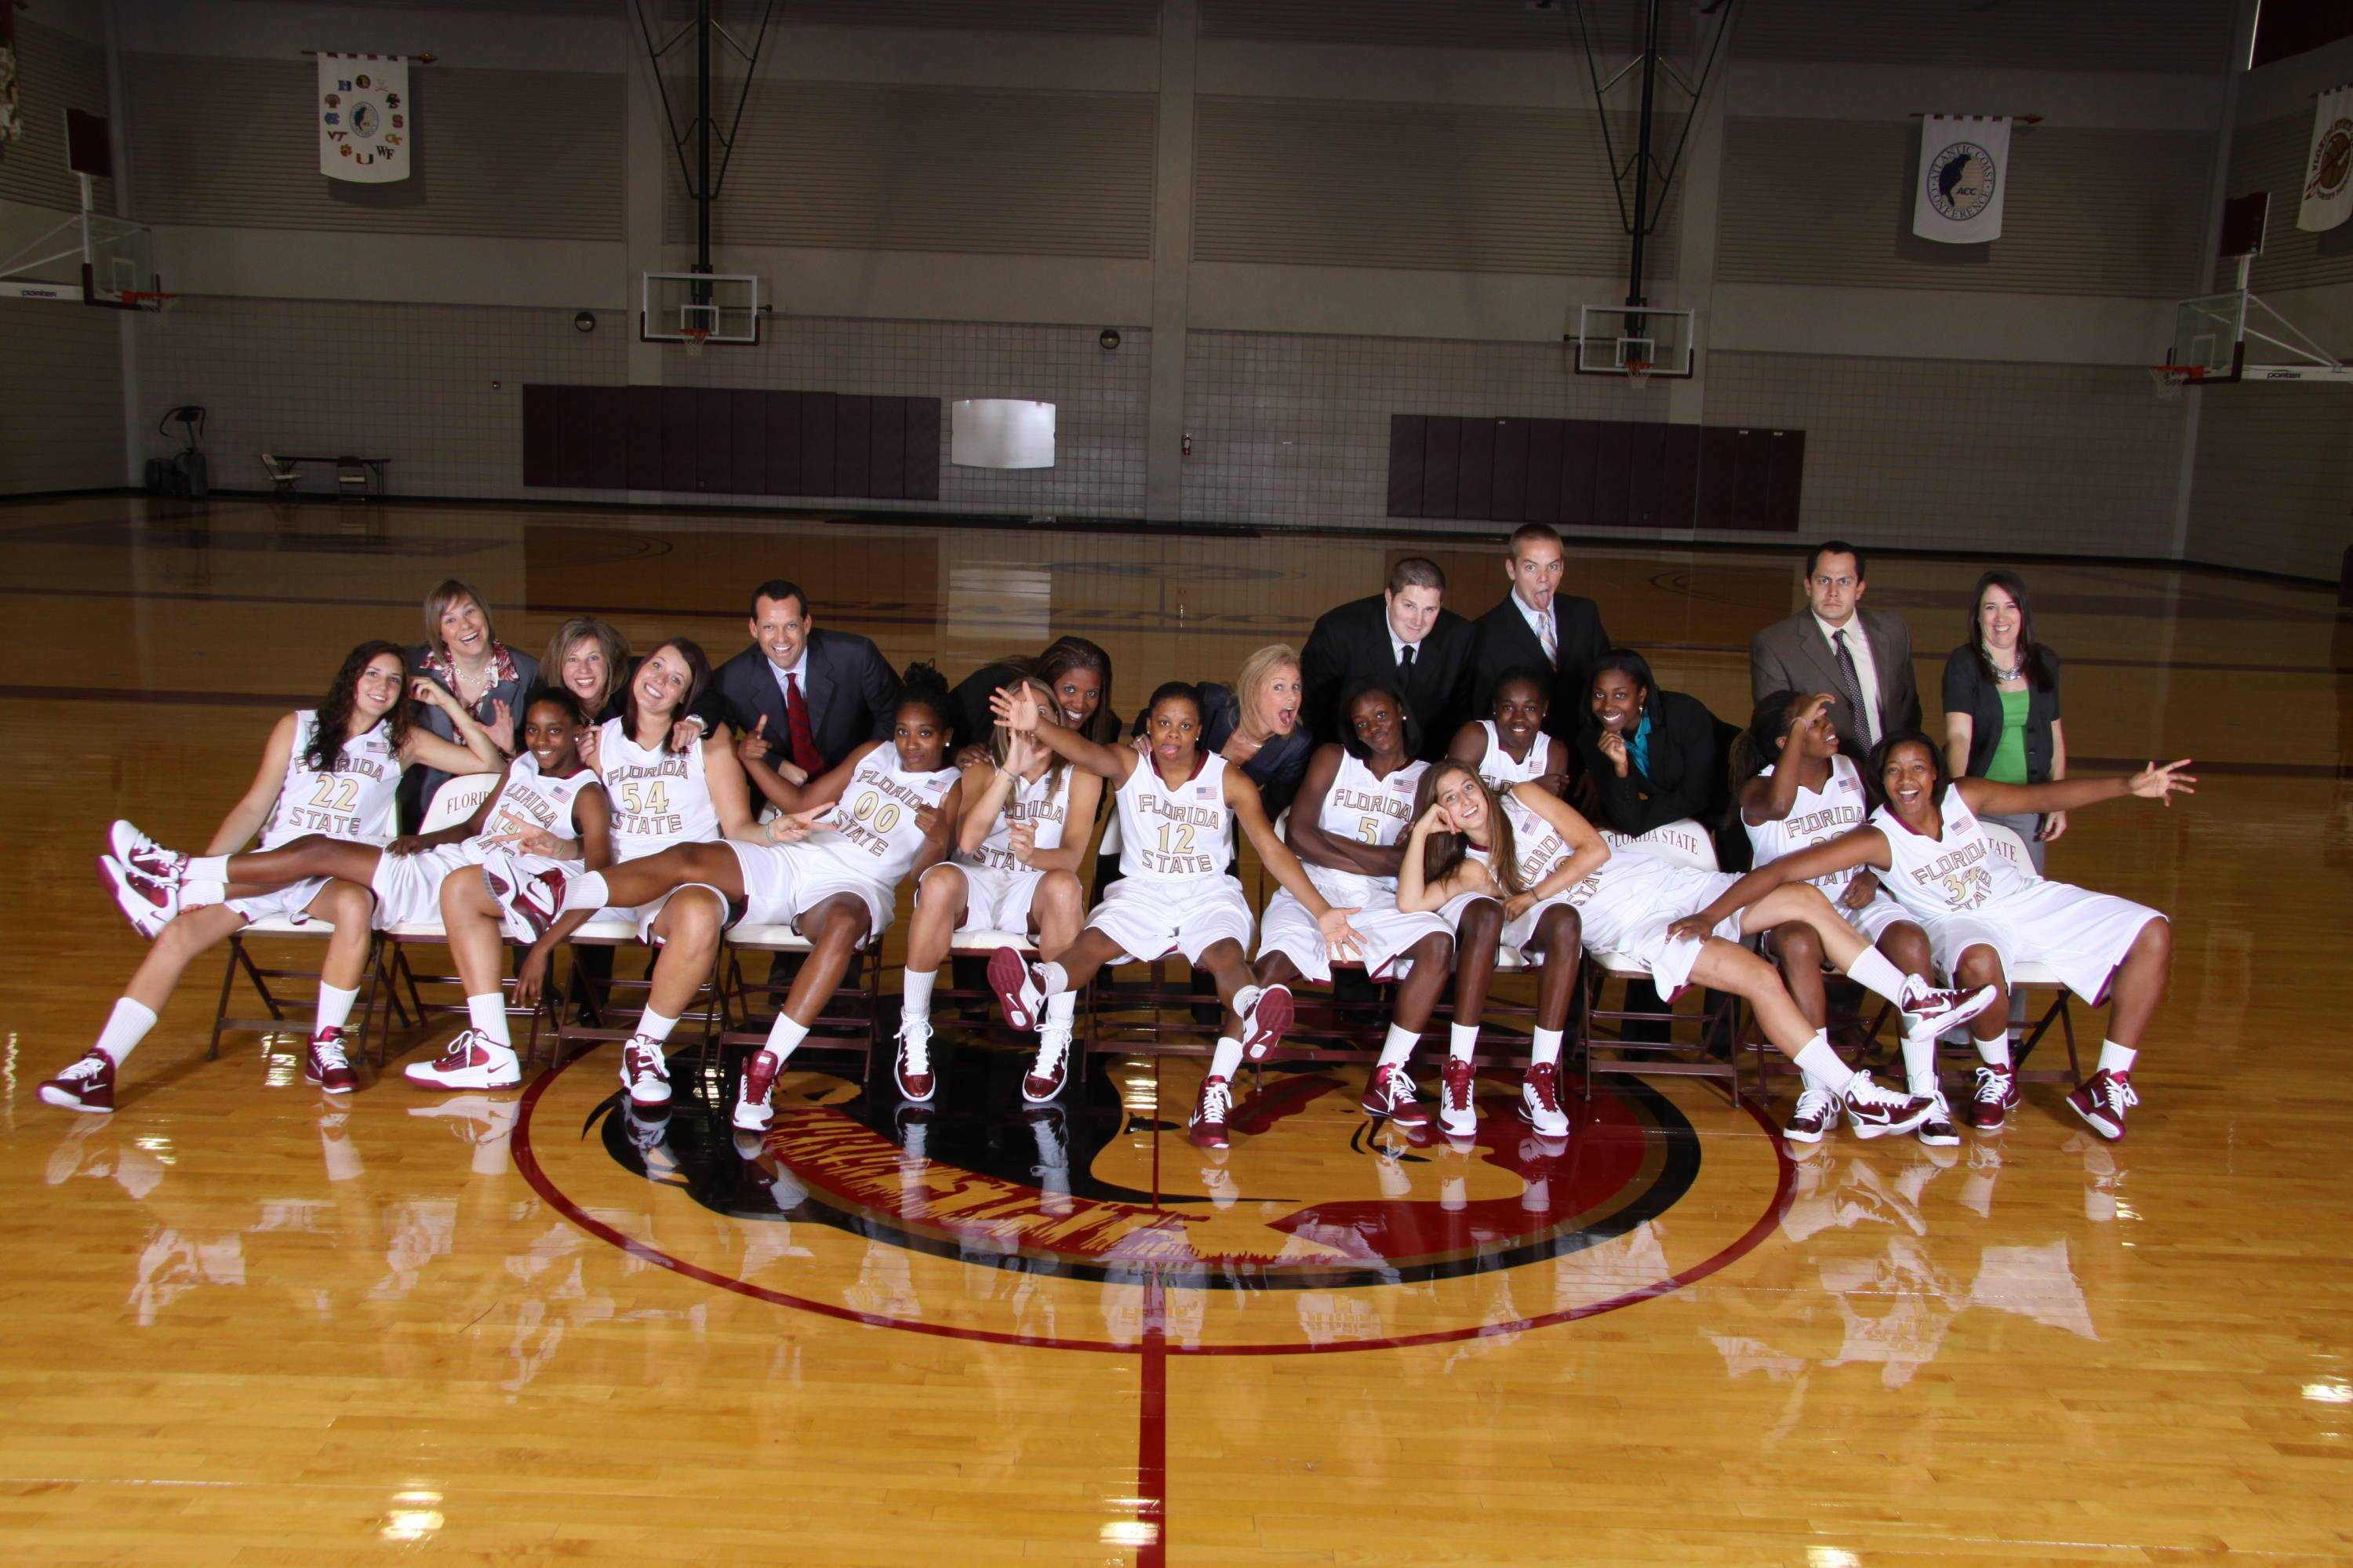 Sept. 29 ... You've seen the official 2010-11 team photo, now here's the silly one.